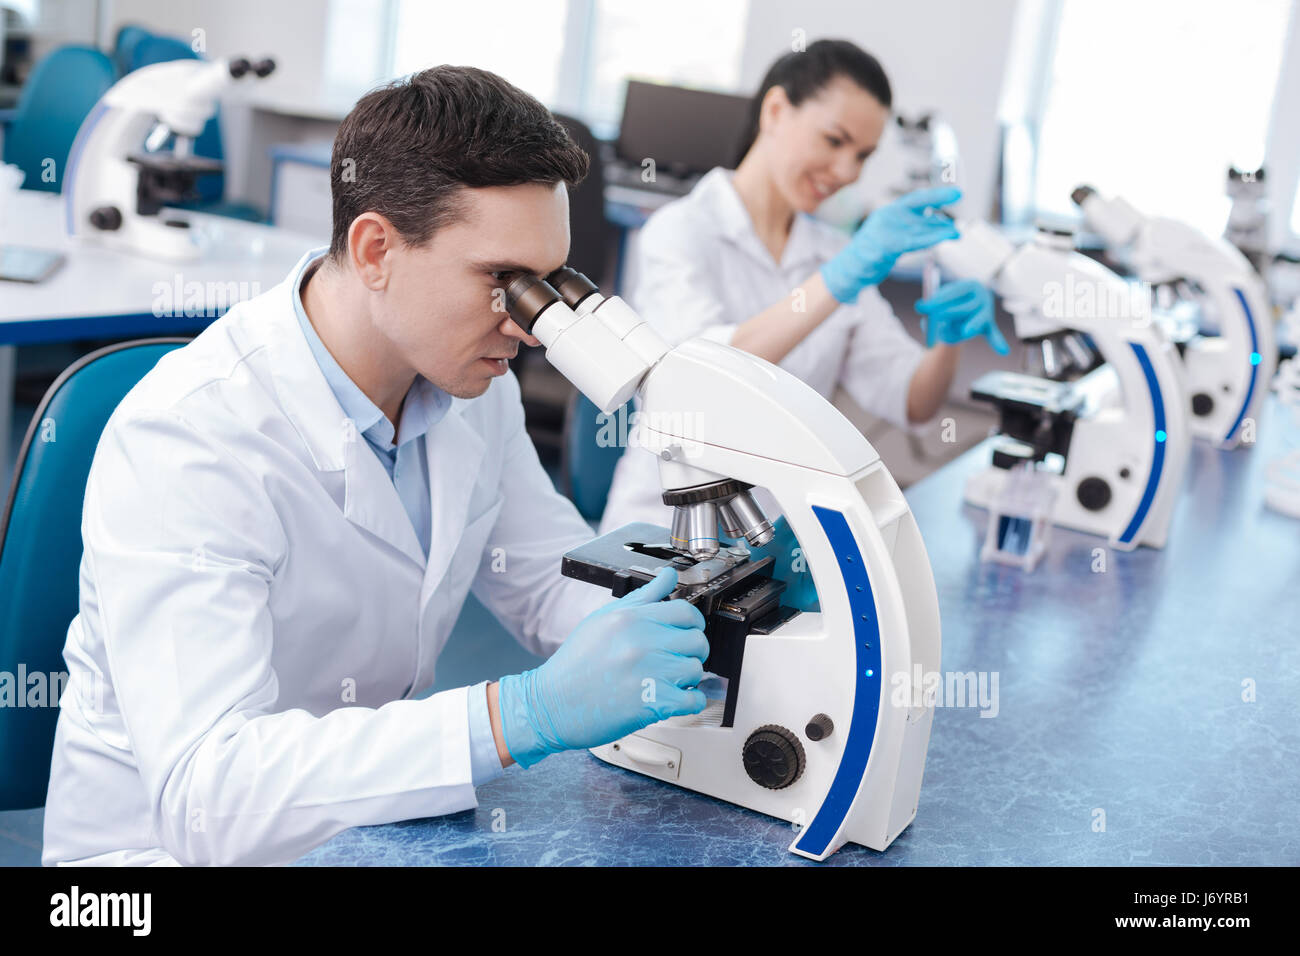 Very attentive lab assistant working with microscope - Stock Image